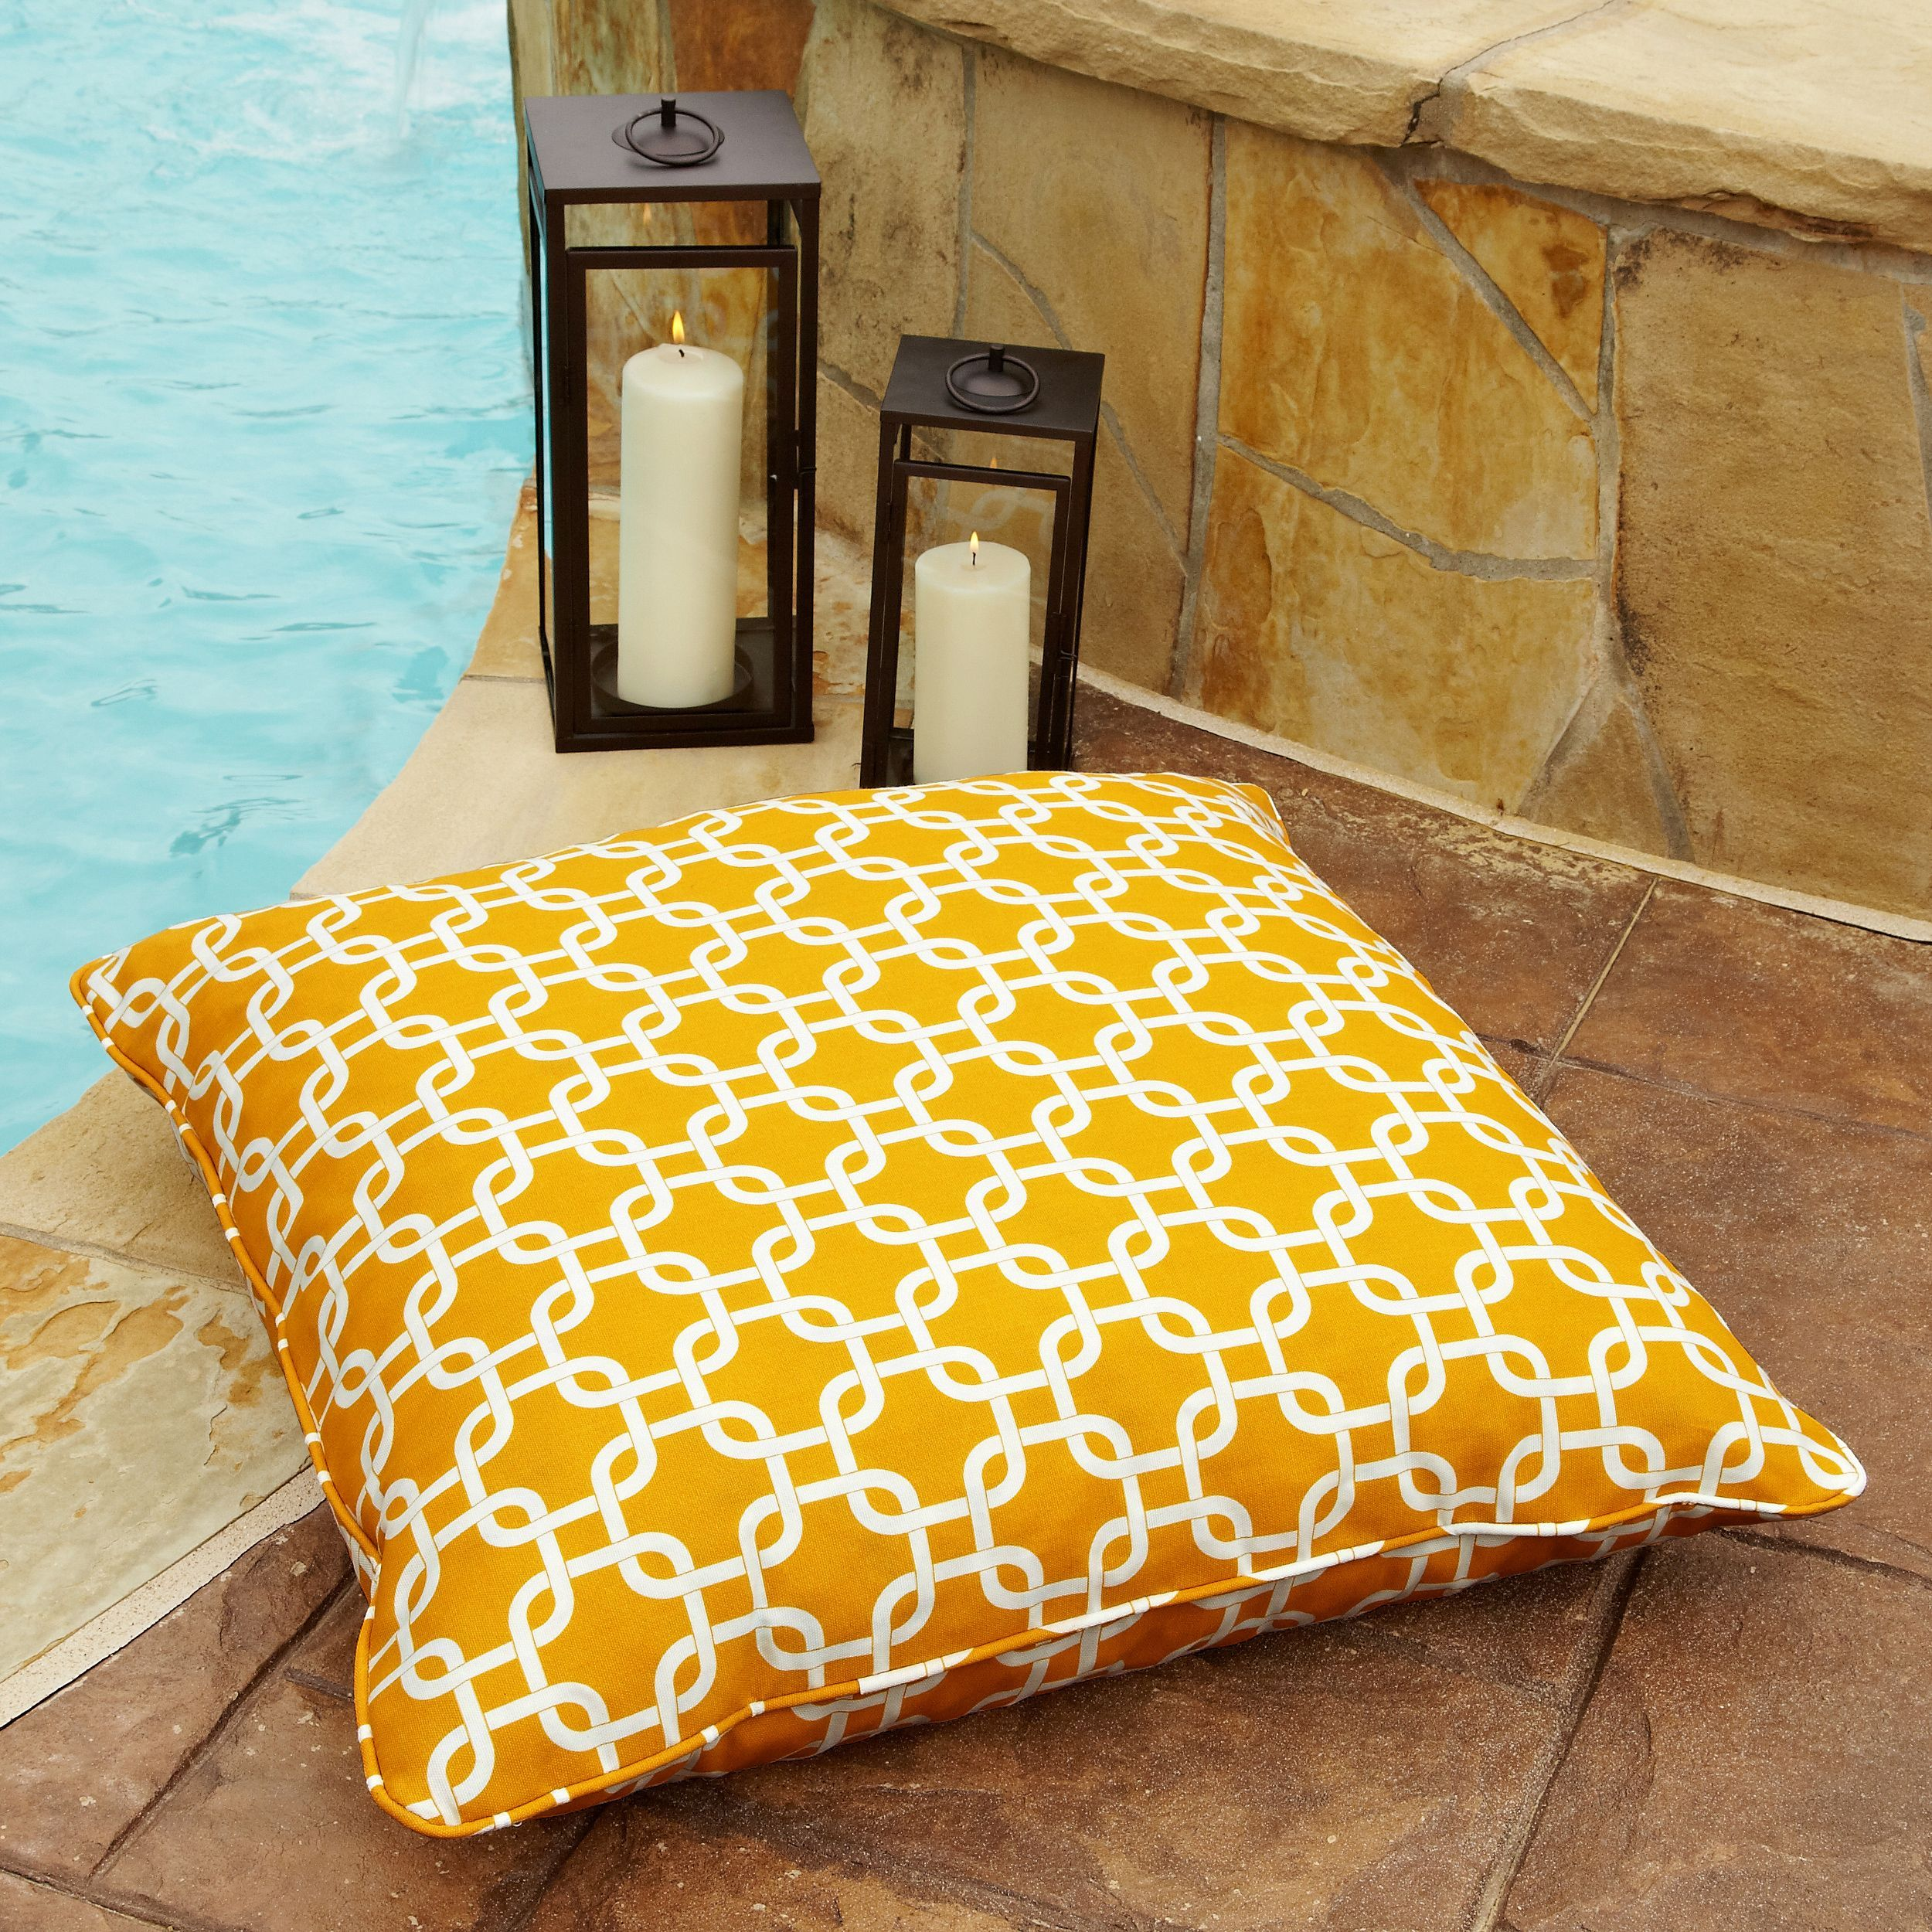 Fun interlocking squares decorate this white and yellow square floor pillow with matching cording. Made from polyester that is resistant to stains and fading, this large comfortable pillow is perfect for any outdoor pool deck or patio.